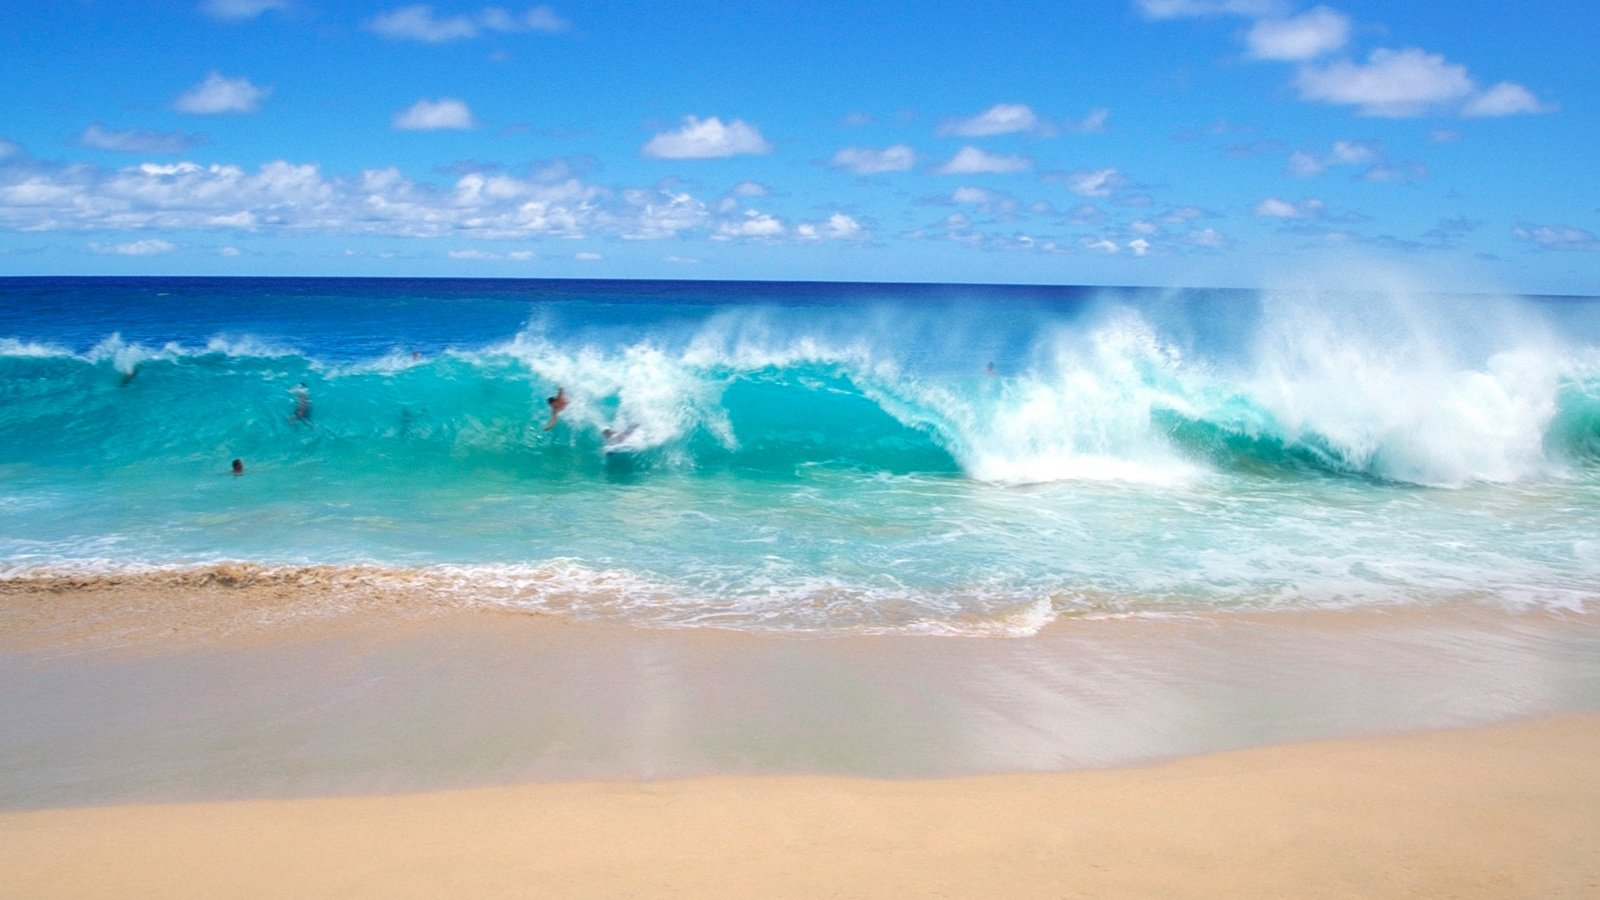 Blue Waves Beach Wallpaper Wallpapers Download Funny Photos 1600x900